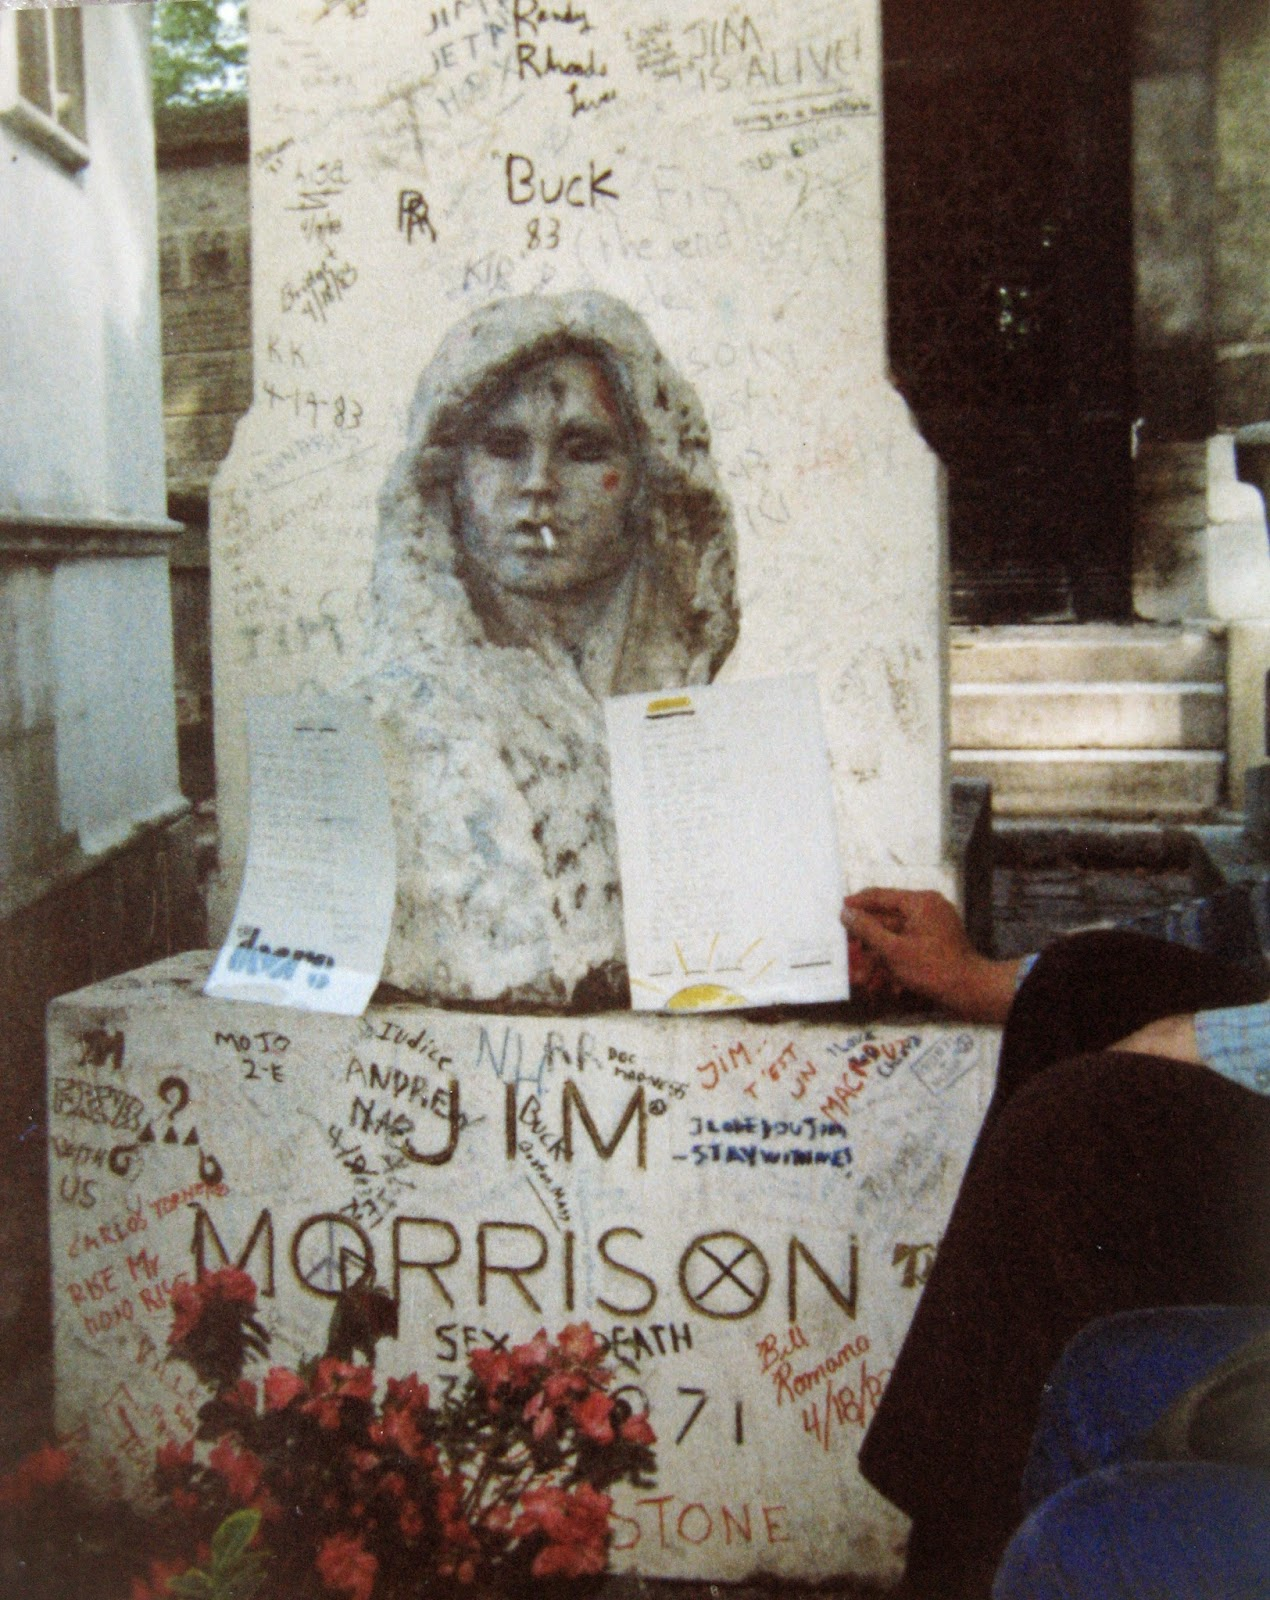 Jim Morrison grave site Pere-Lachaise Cemetery May 4, 1983